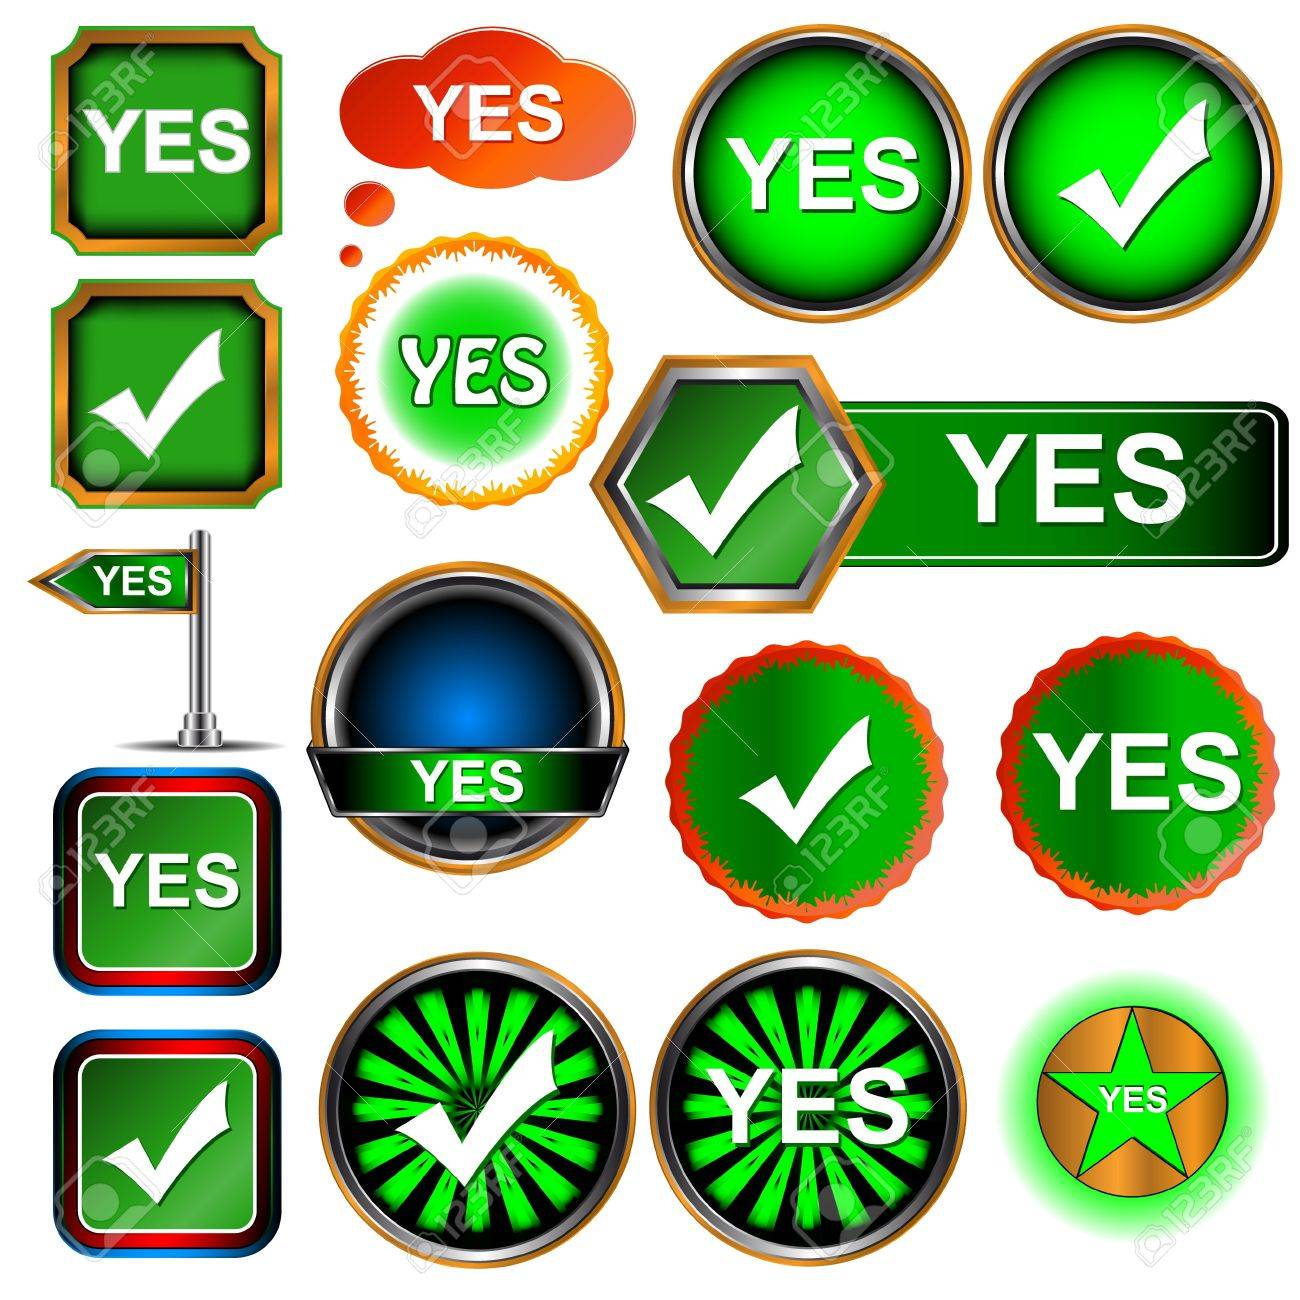 Big yes icons set on a white background Stock Vector - 16259031